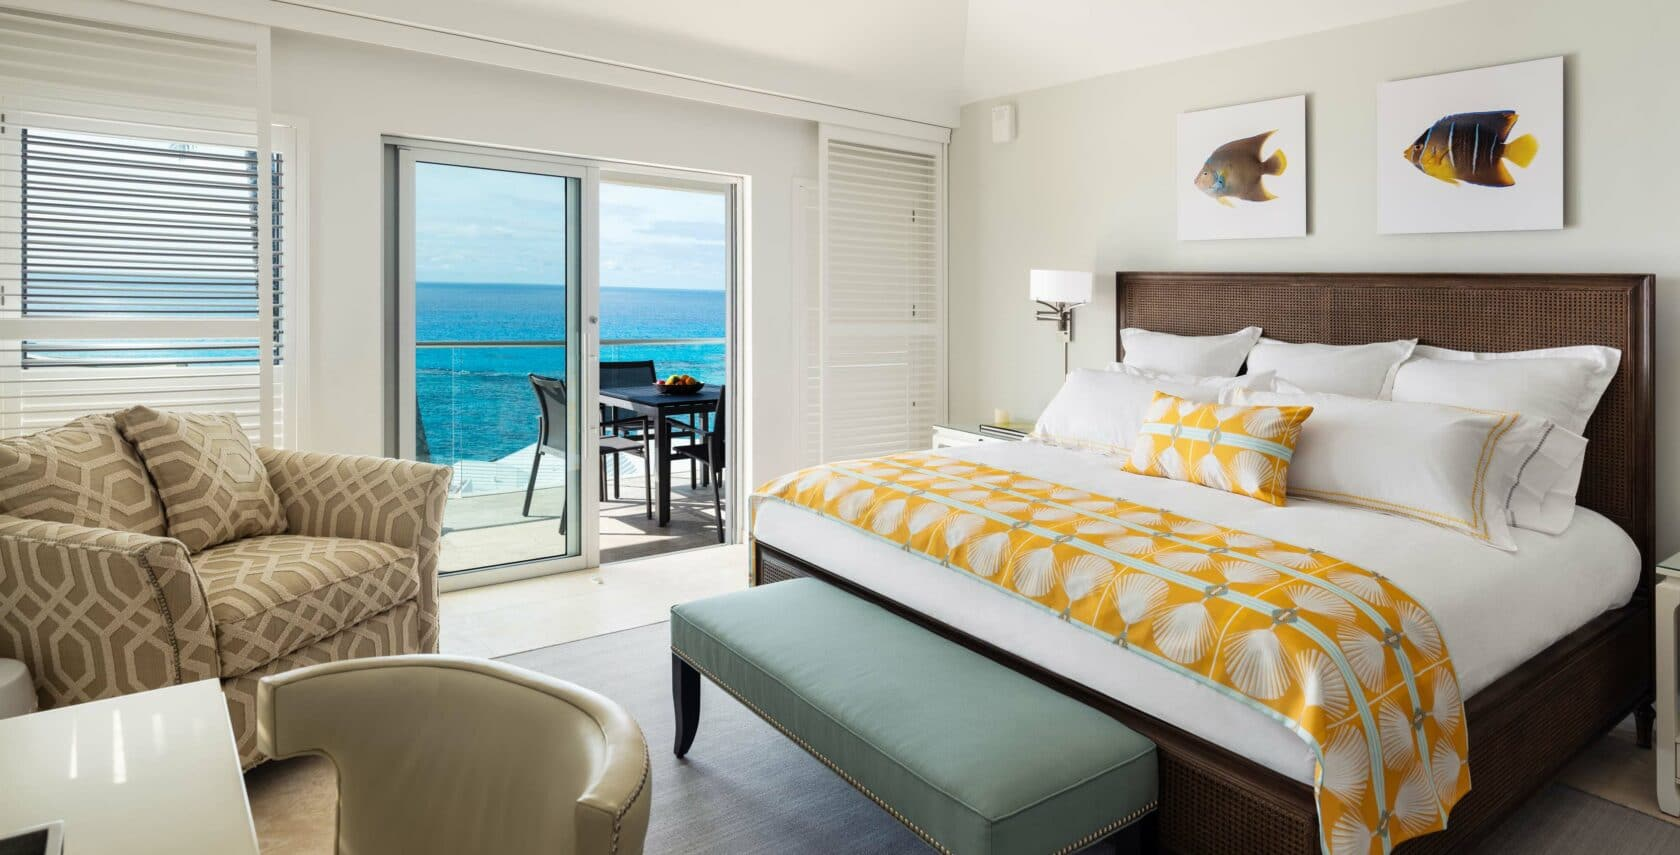 A bedroom with sliding glass doors leading to a deck with an ocean view.